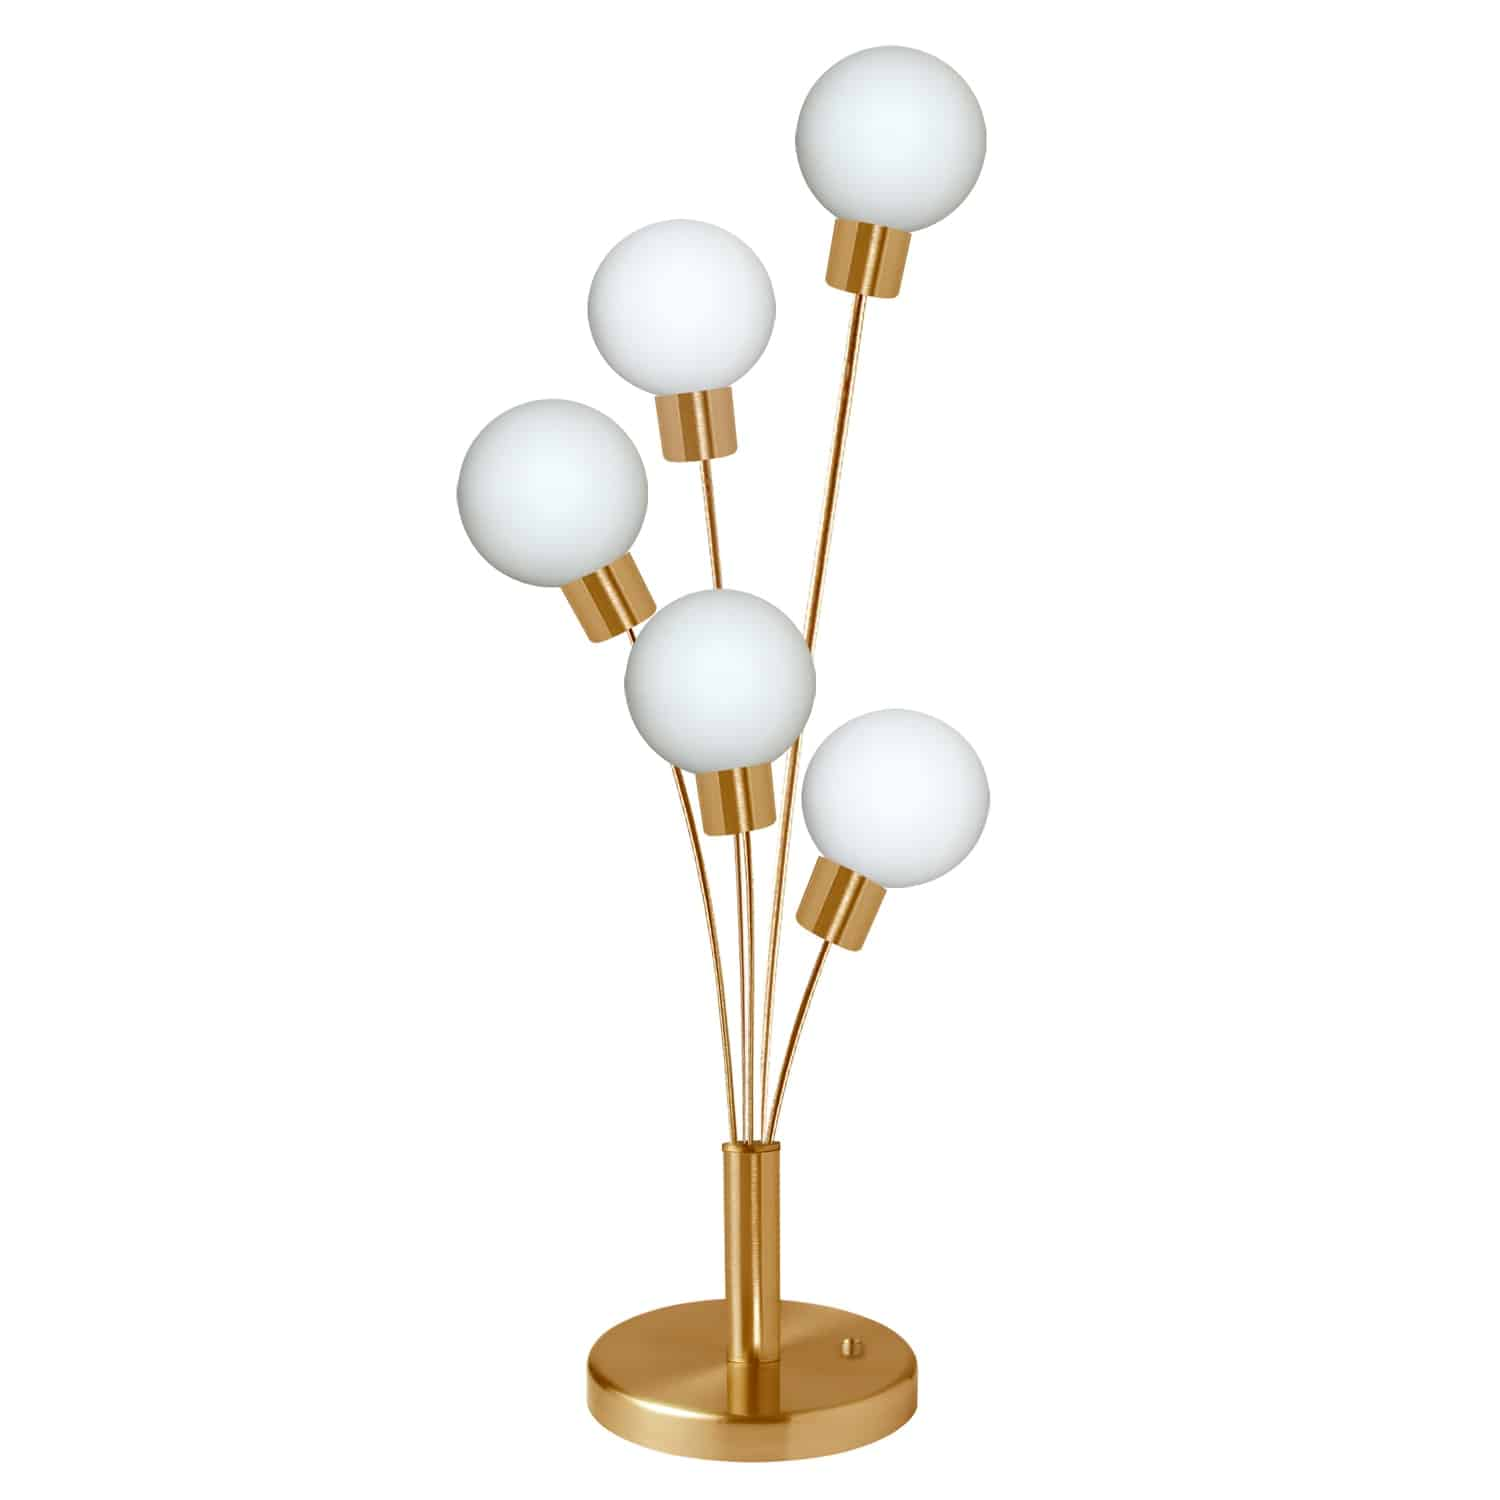 5 Light Incandescent Table Lamp Aged Brass Finish with White Glass